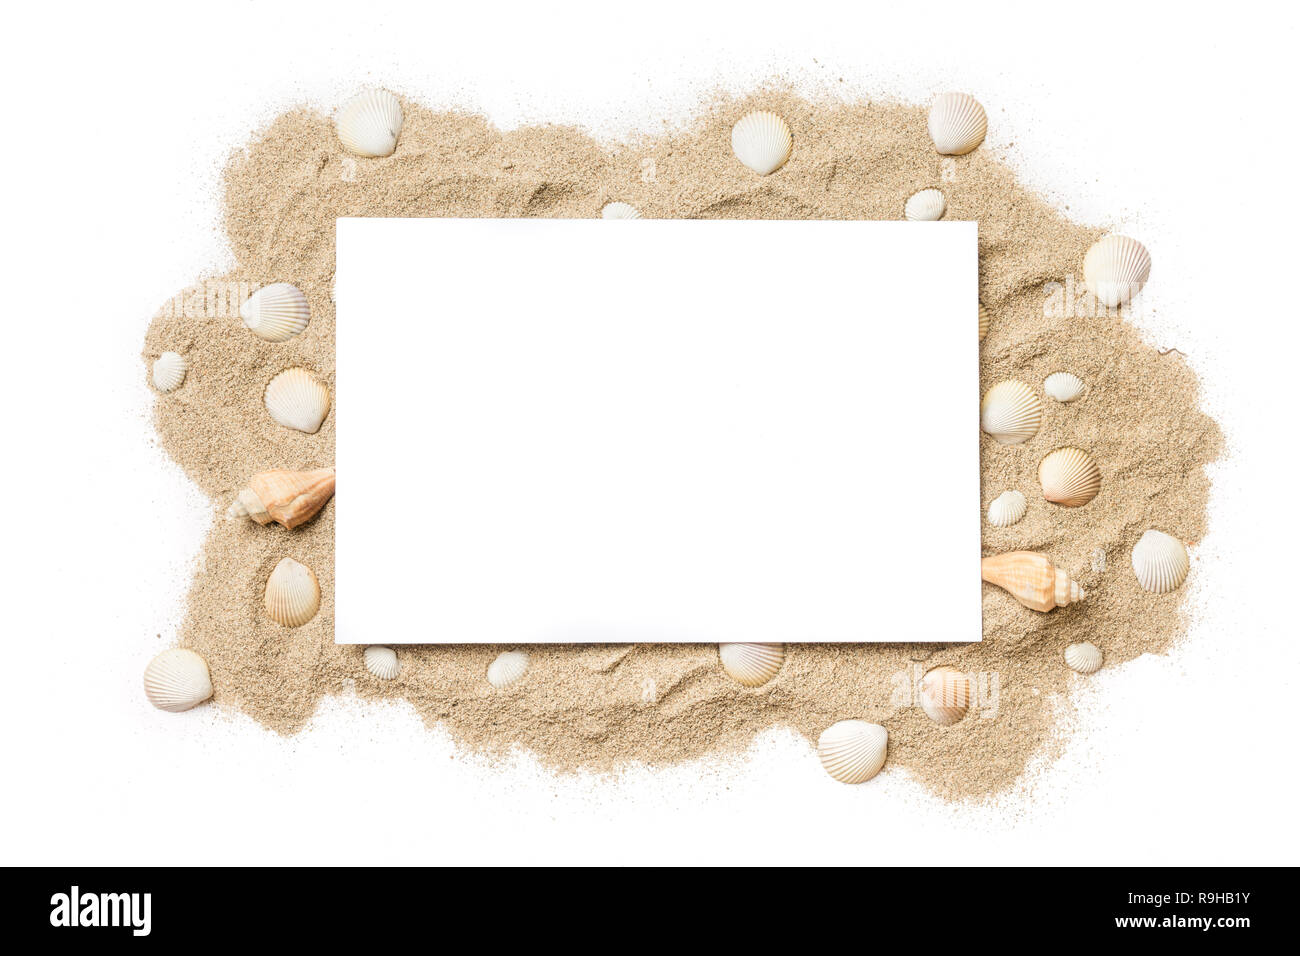 Summer sand and sea shells themed template design with copy space for text. - Stock Image